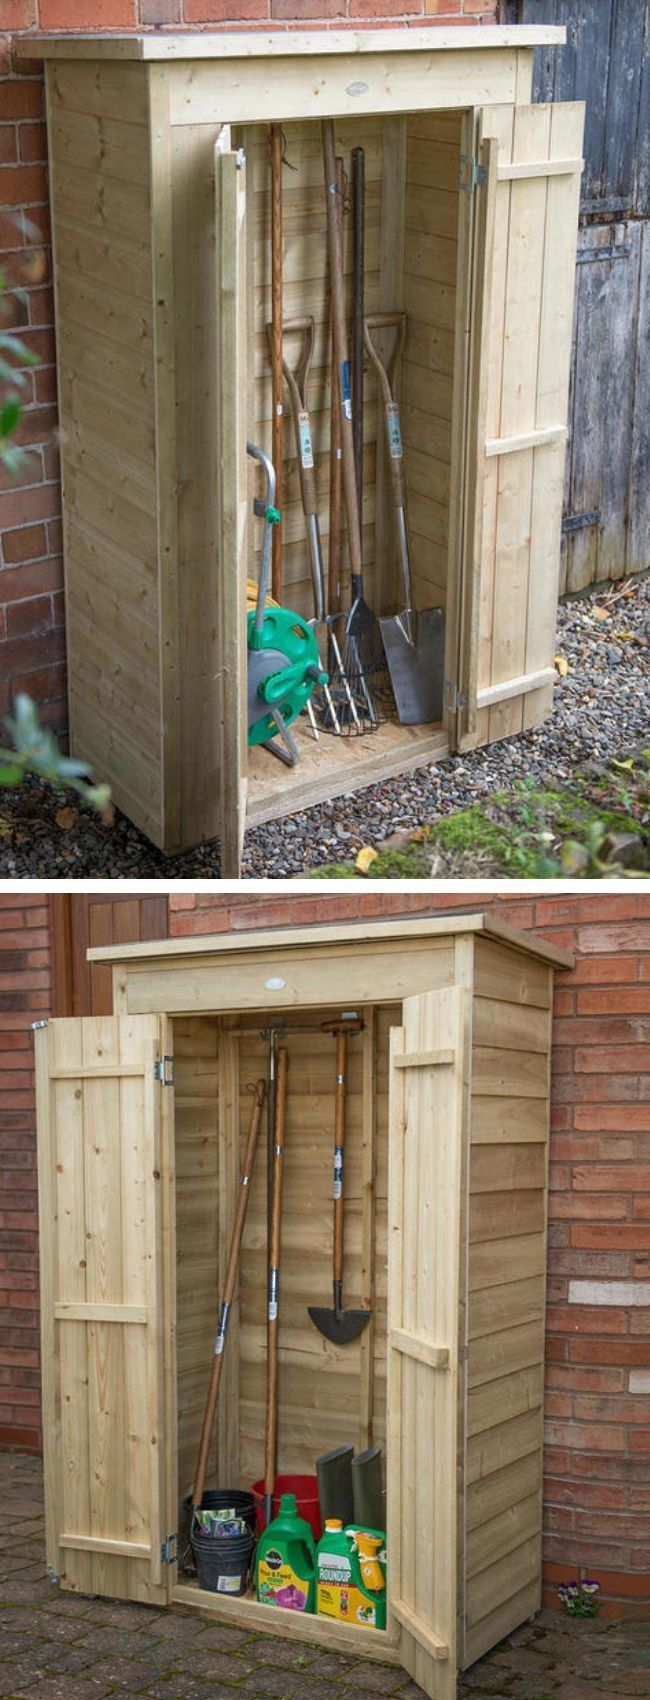 Pent Roofed Tall Garden Stores These Sheds Are Perfect For The Storage Of Spades Forks Brooms An Small Garden Tools Small Garden Storage Garden Tool Storage Backyard garden tool storage